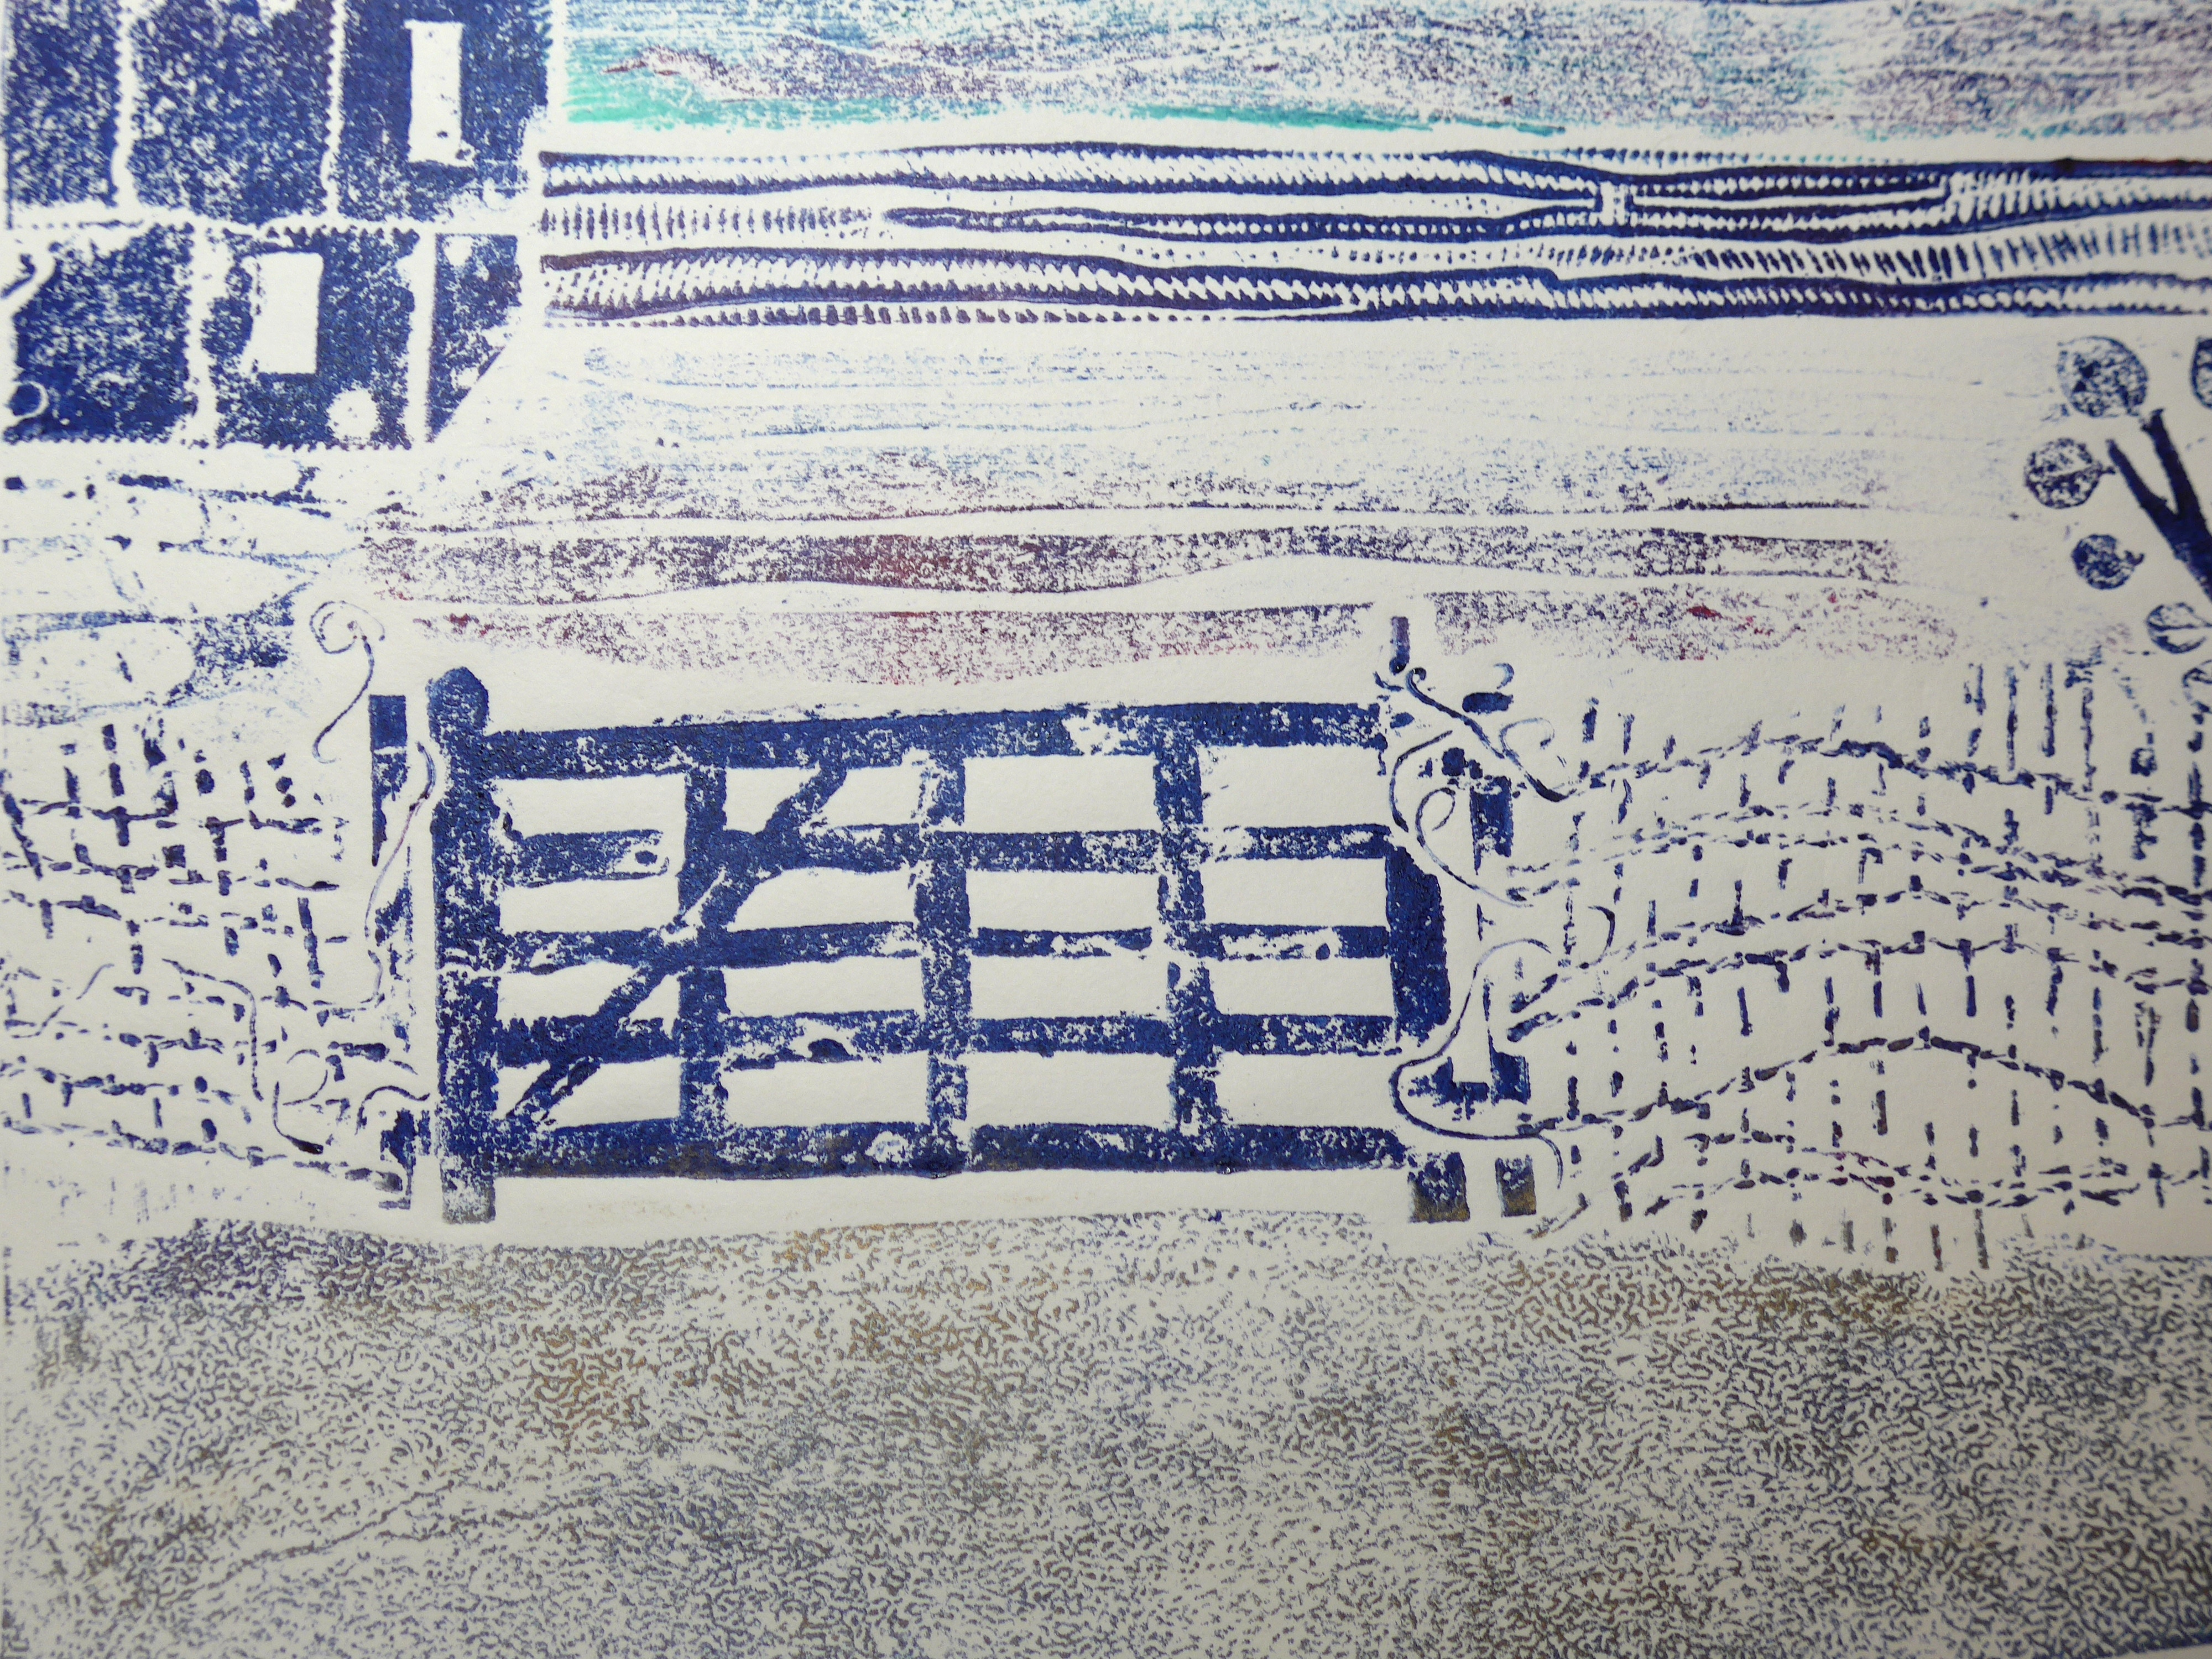 Collagraph by printmaker artist Diane Young showing a five bar gate and textures7